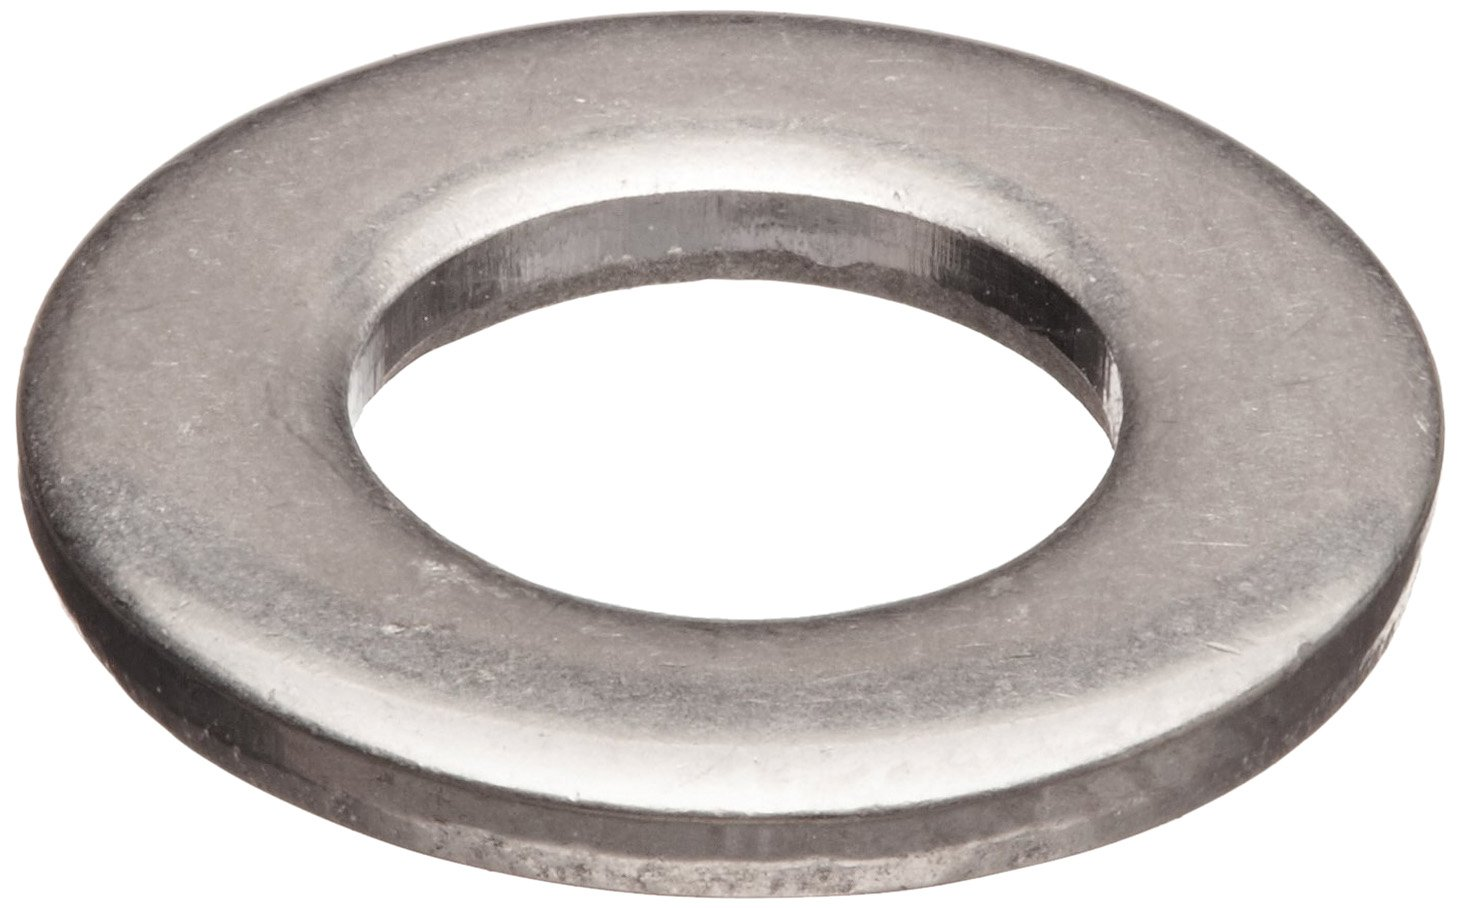 1//4 Hole Size 0.640 ID 0.063 Nominal Thickness 18-8 Stainless Steel Flat Washer Made in US 1//4 Hole Size 0.640 ID 1.188 OD 0.063 Nominal Thickness Accurate Manufacturing AN960-C1016BULK 1.188 OD Pack of 25